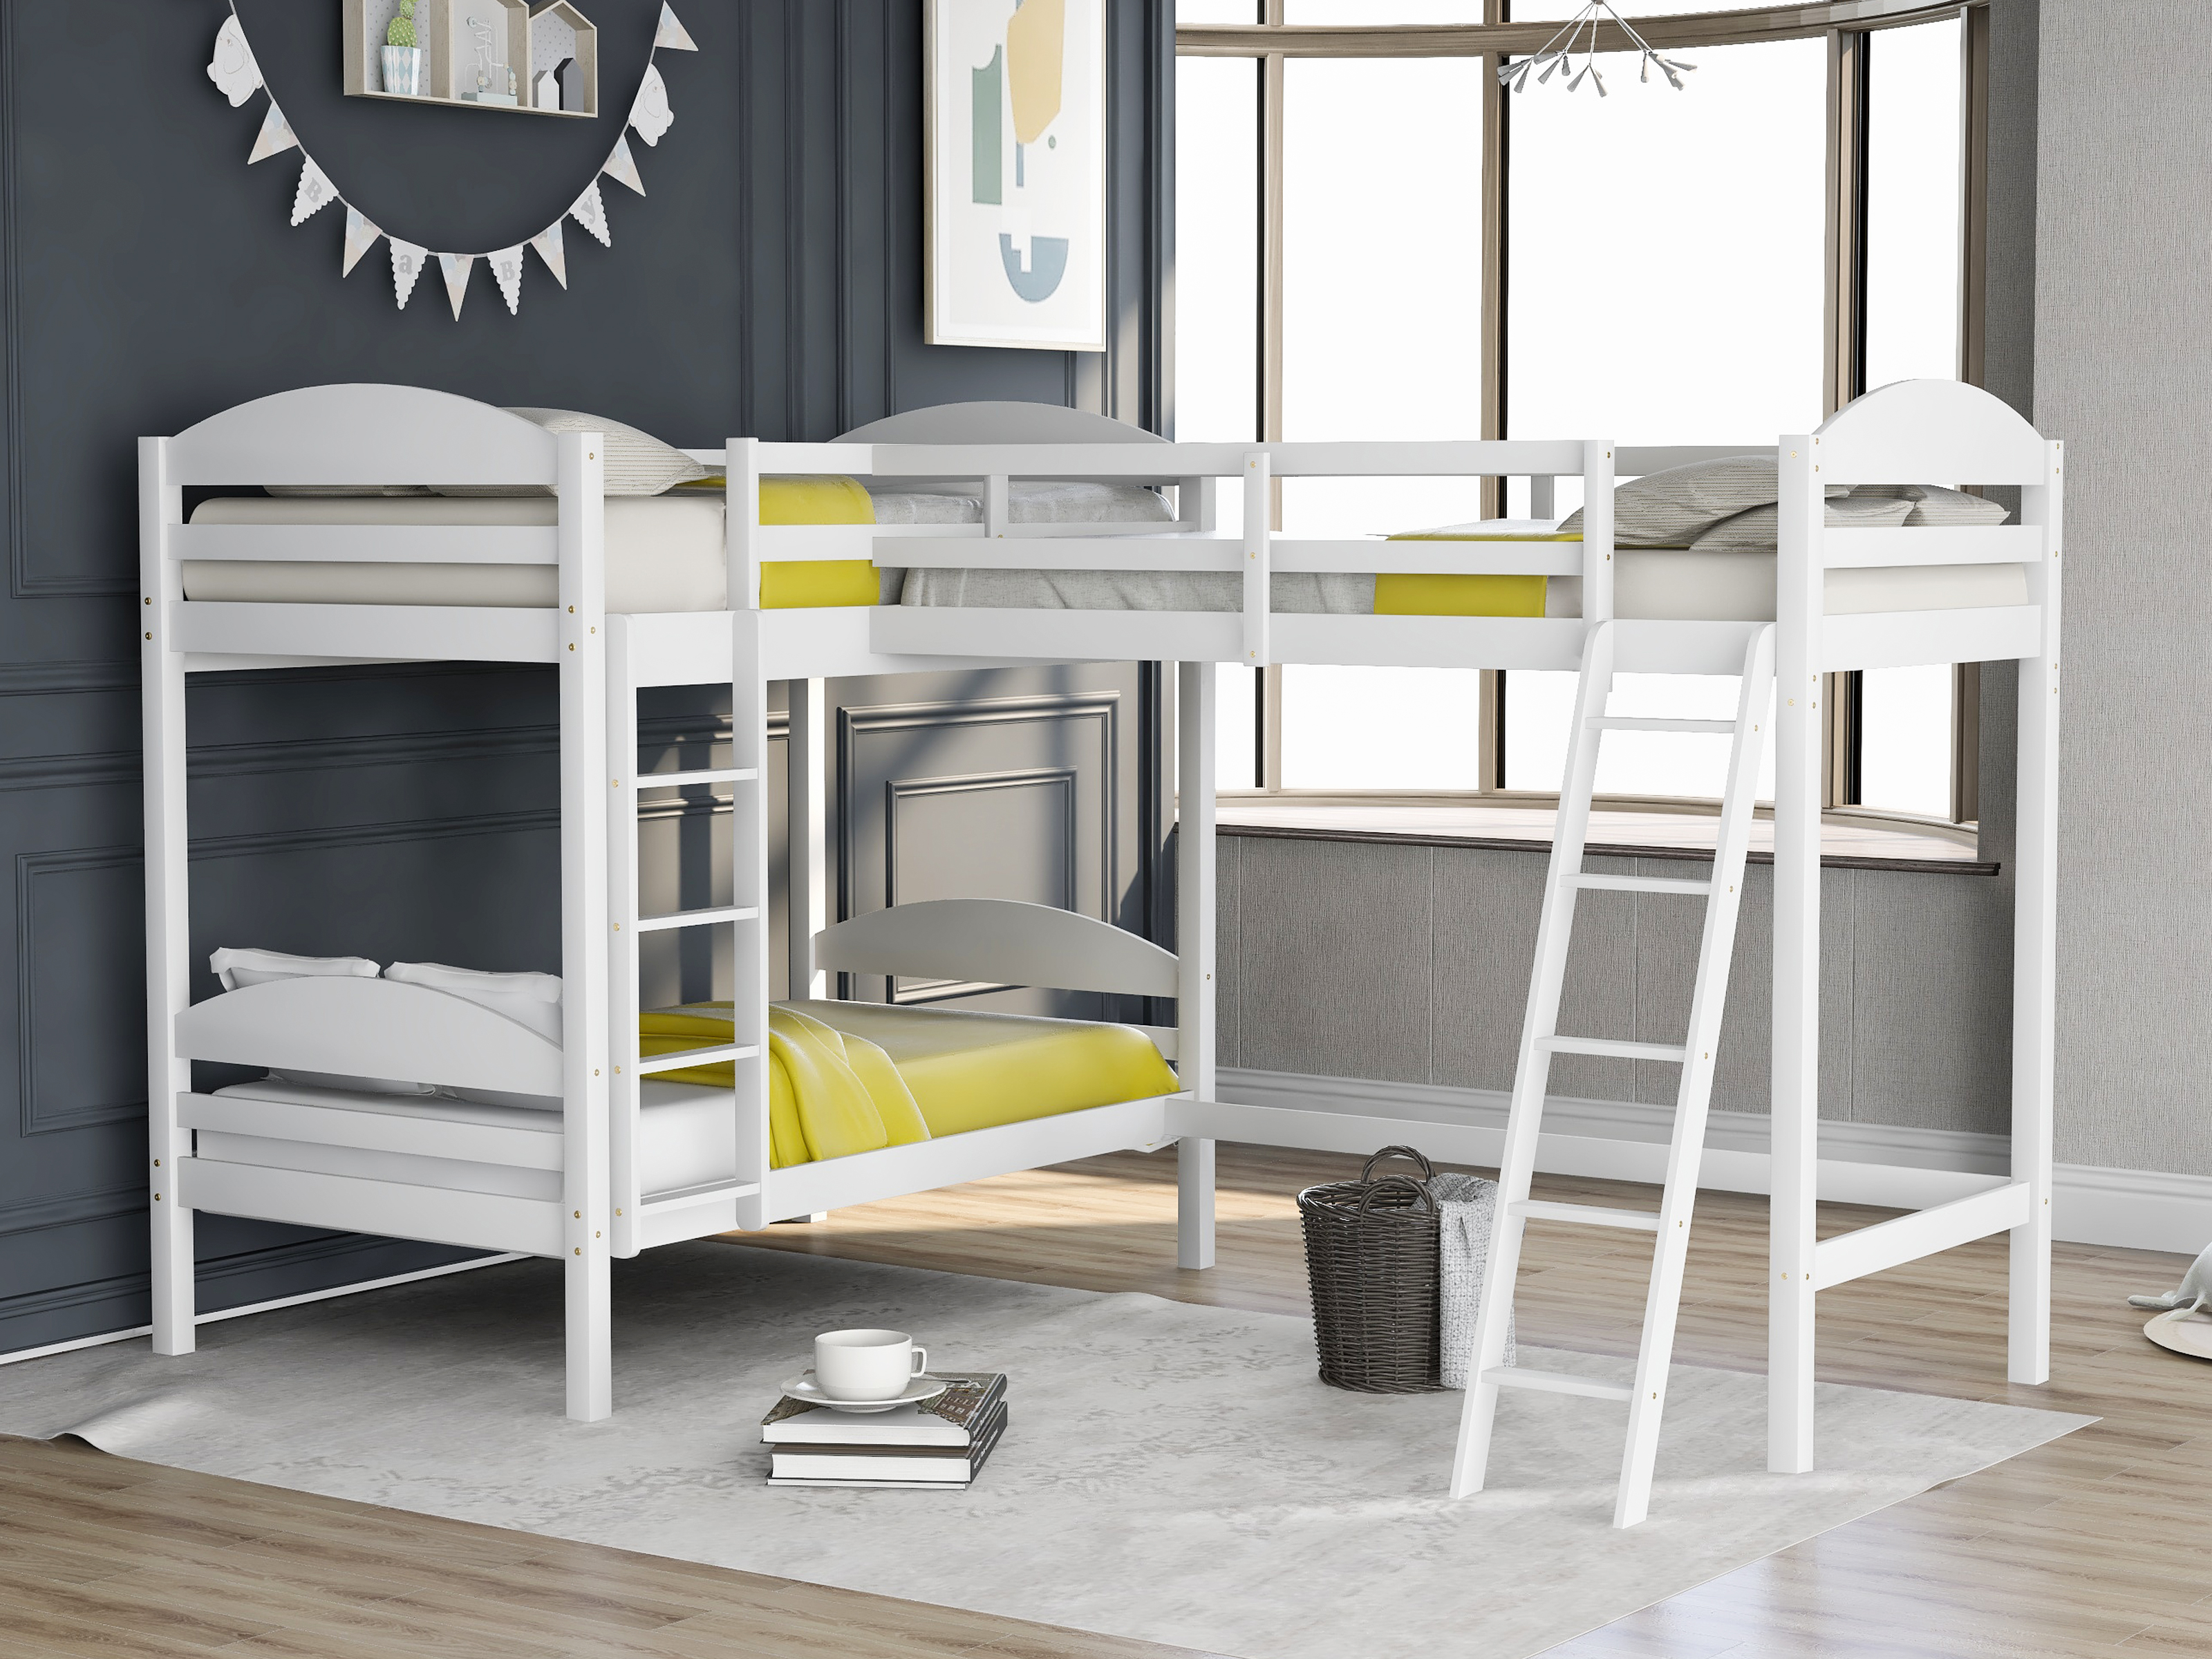 Eggree Twin Over Twin Bunk Beds Wood L Shaped Twin Kids Bed Platform Bed Loft Bed White Gray Espresso Aliexpress